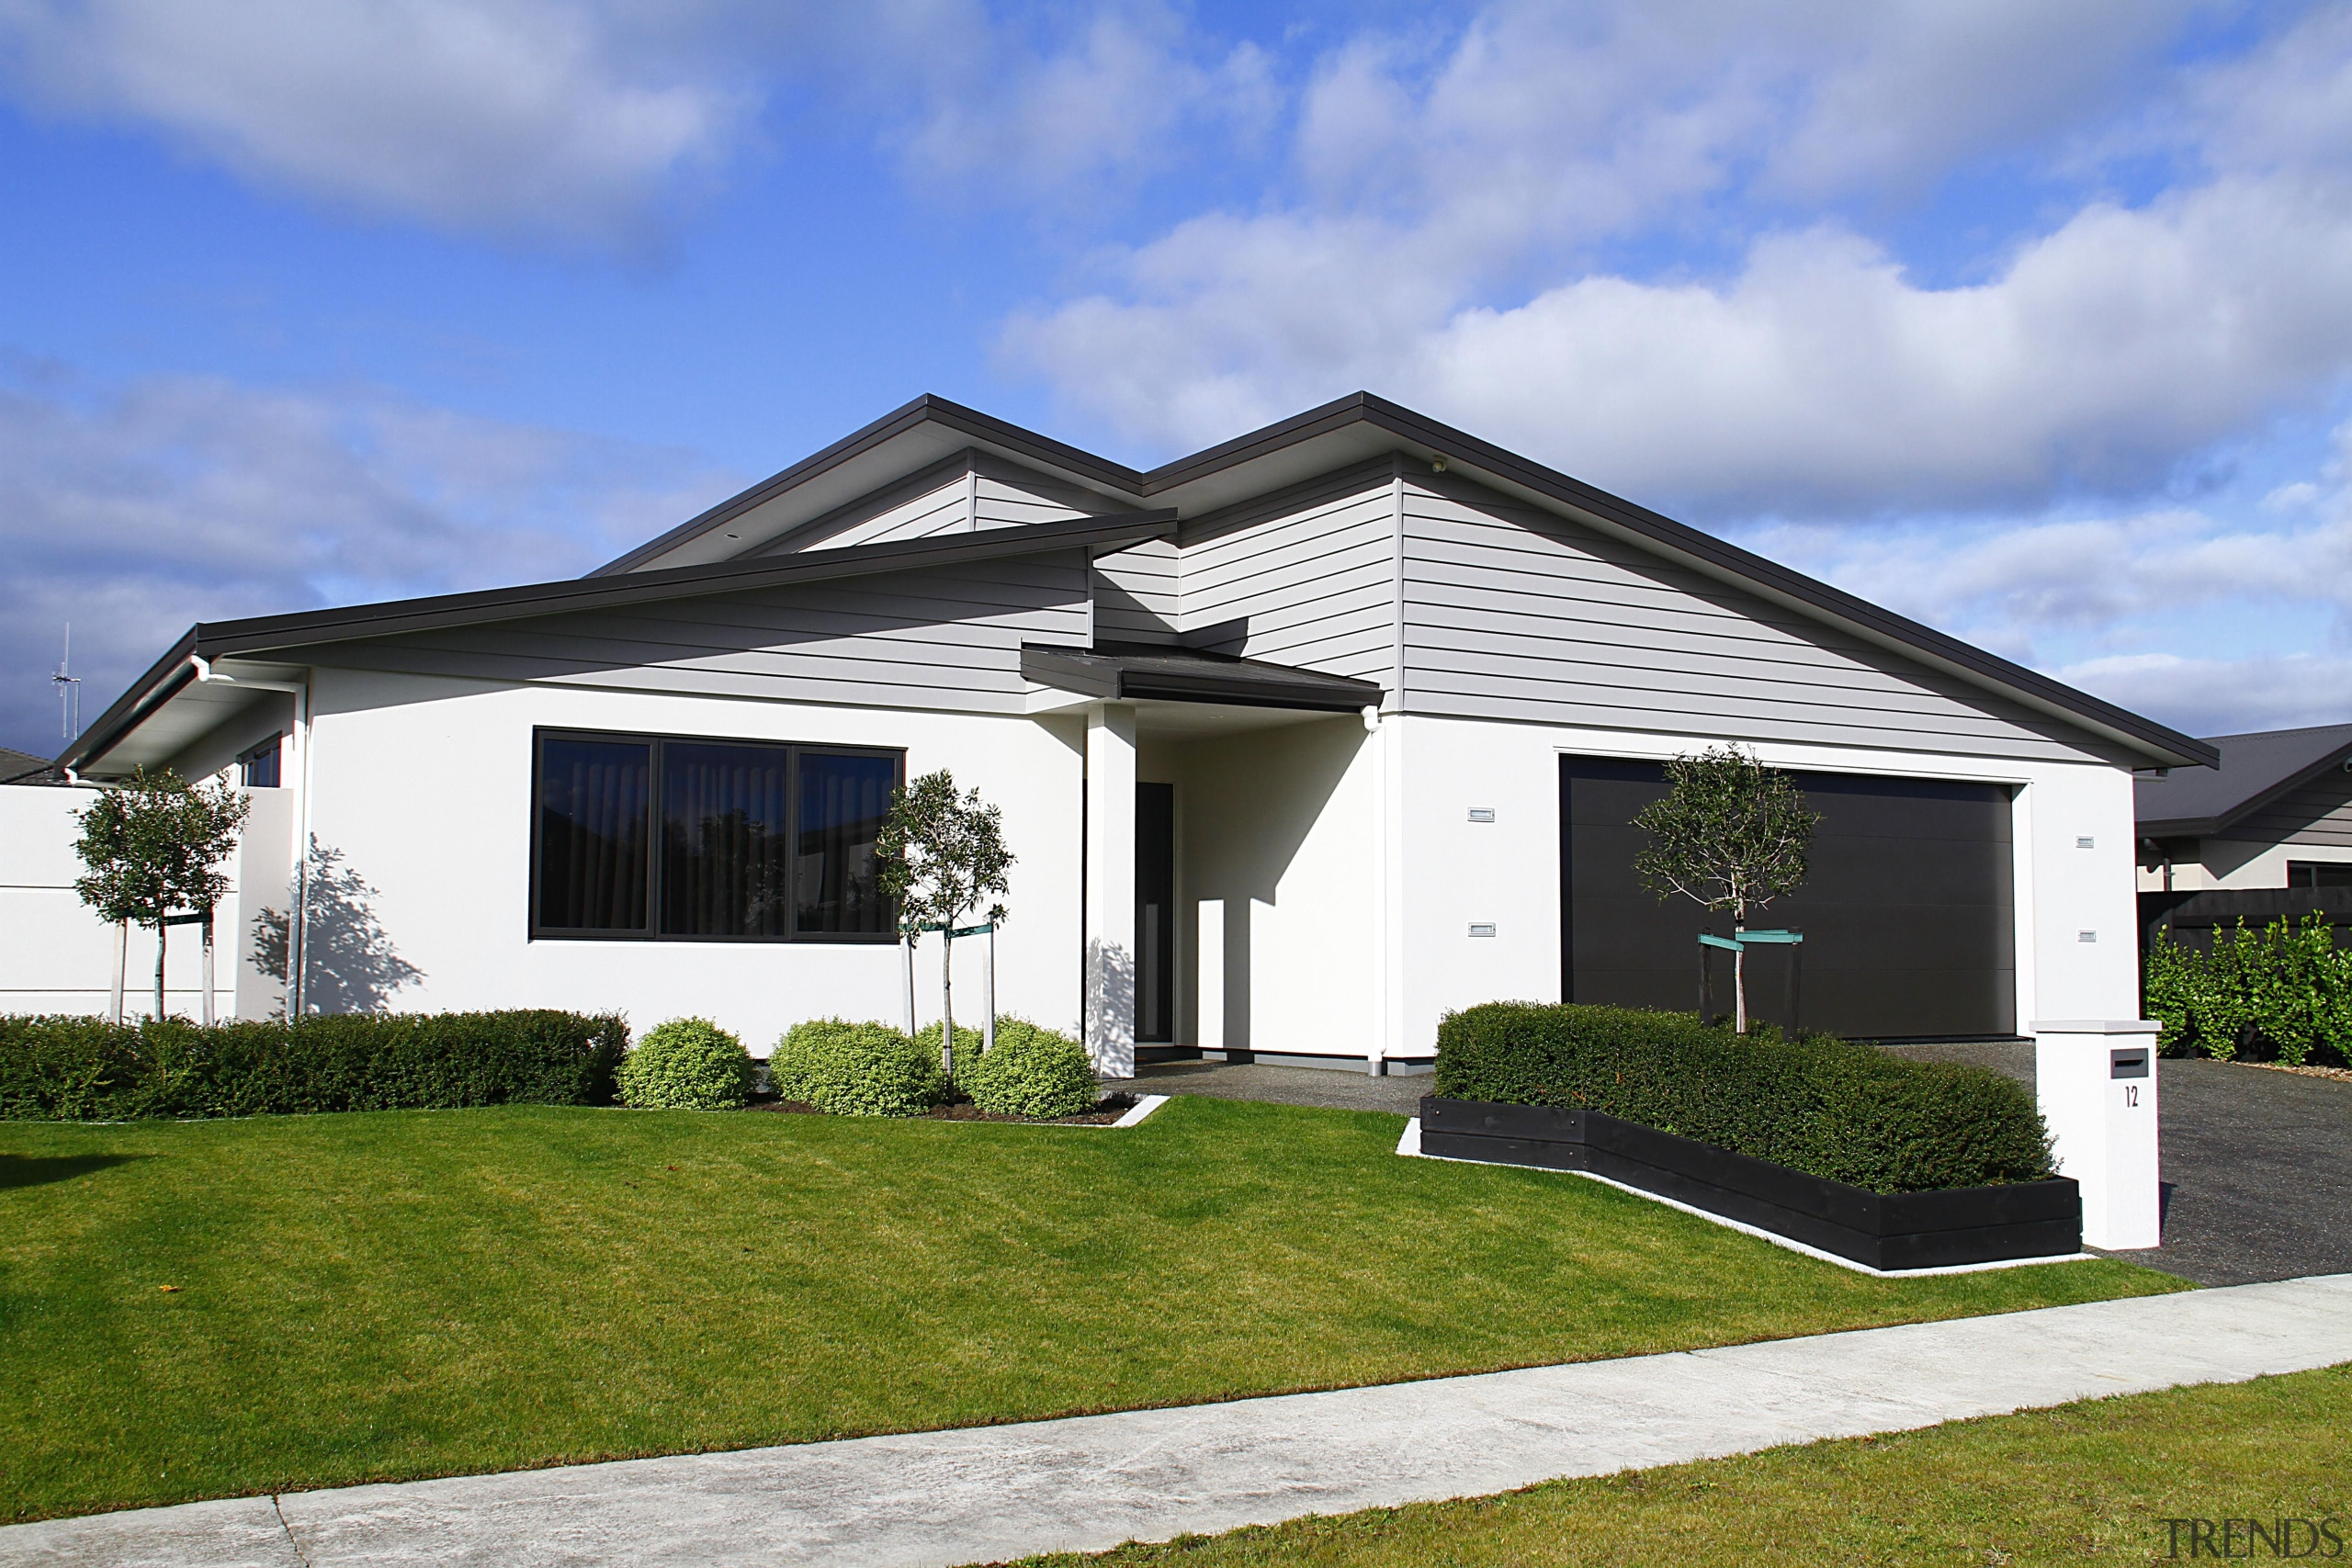 Award Winning Home in Manuwatu - building   building, cottage, elevation, estate, facade, home, house, property, real estate, residential area, roof, siding, sky, villa, white